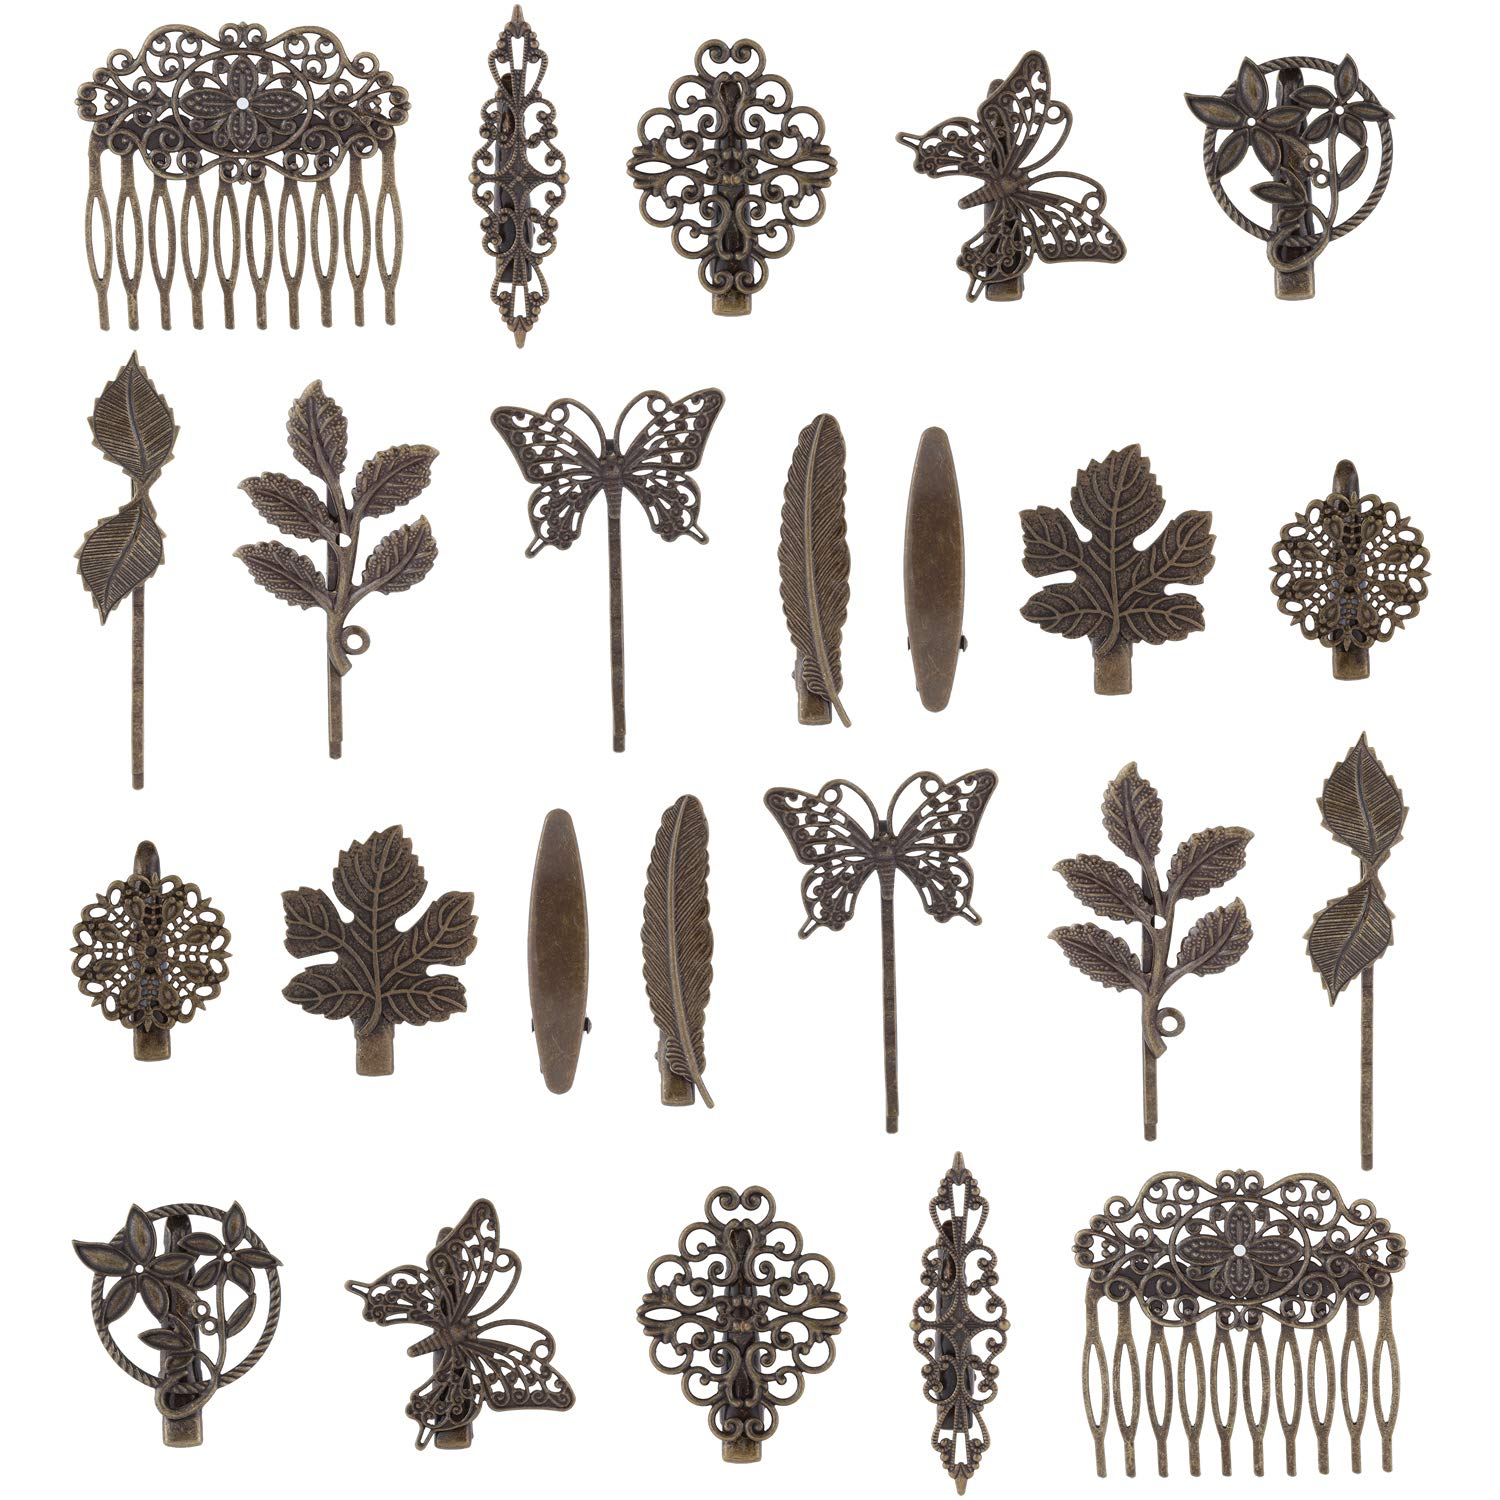 24 Pack Vintage Retro Boho Bronze Copper Metal Hair Clips Barrettes Butterfly Flower Leaf Feather Duckbill Alligator Hairpins Bobby Pins Comb Claws Wedding Bridal Decorative Accessories for Women by Angla